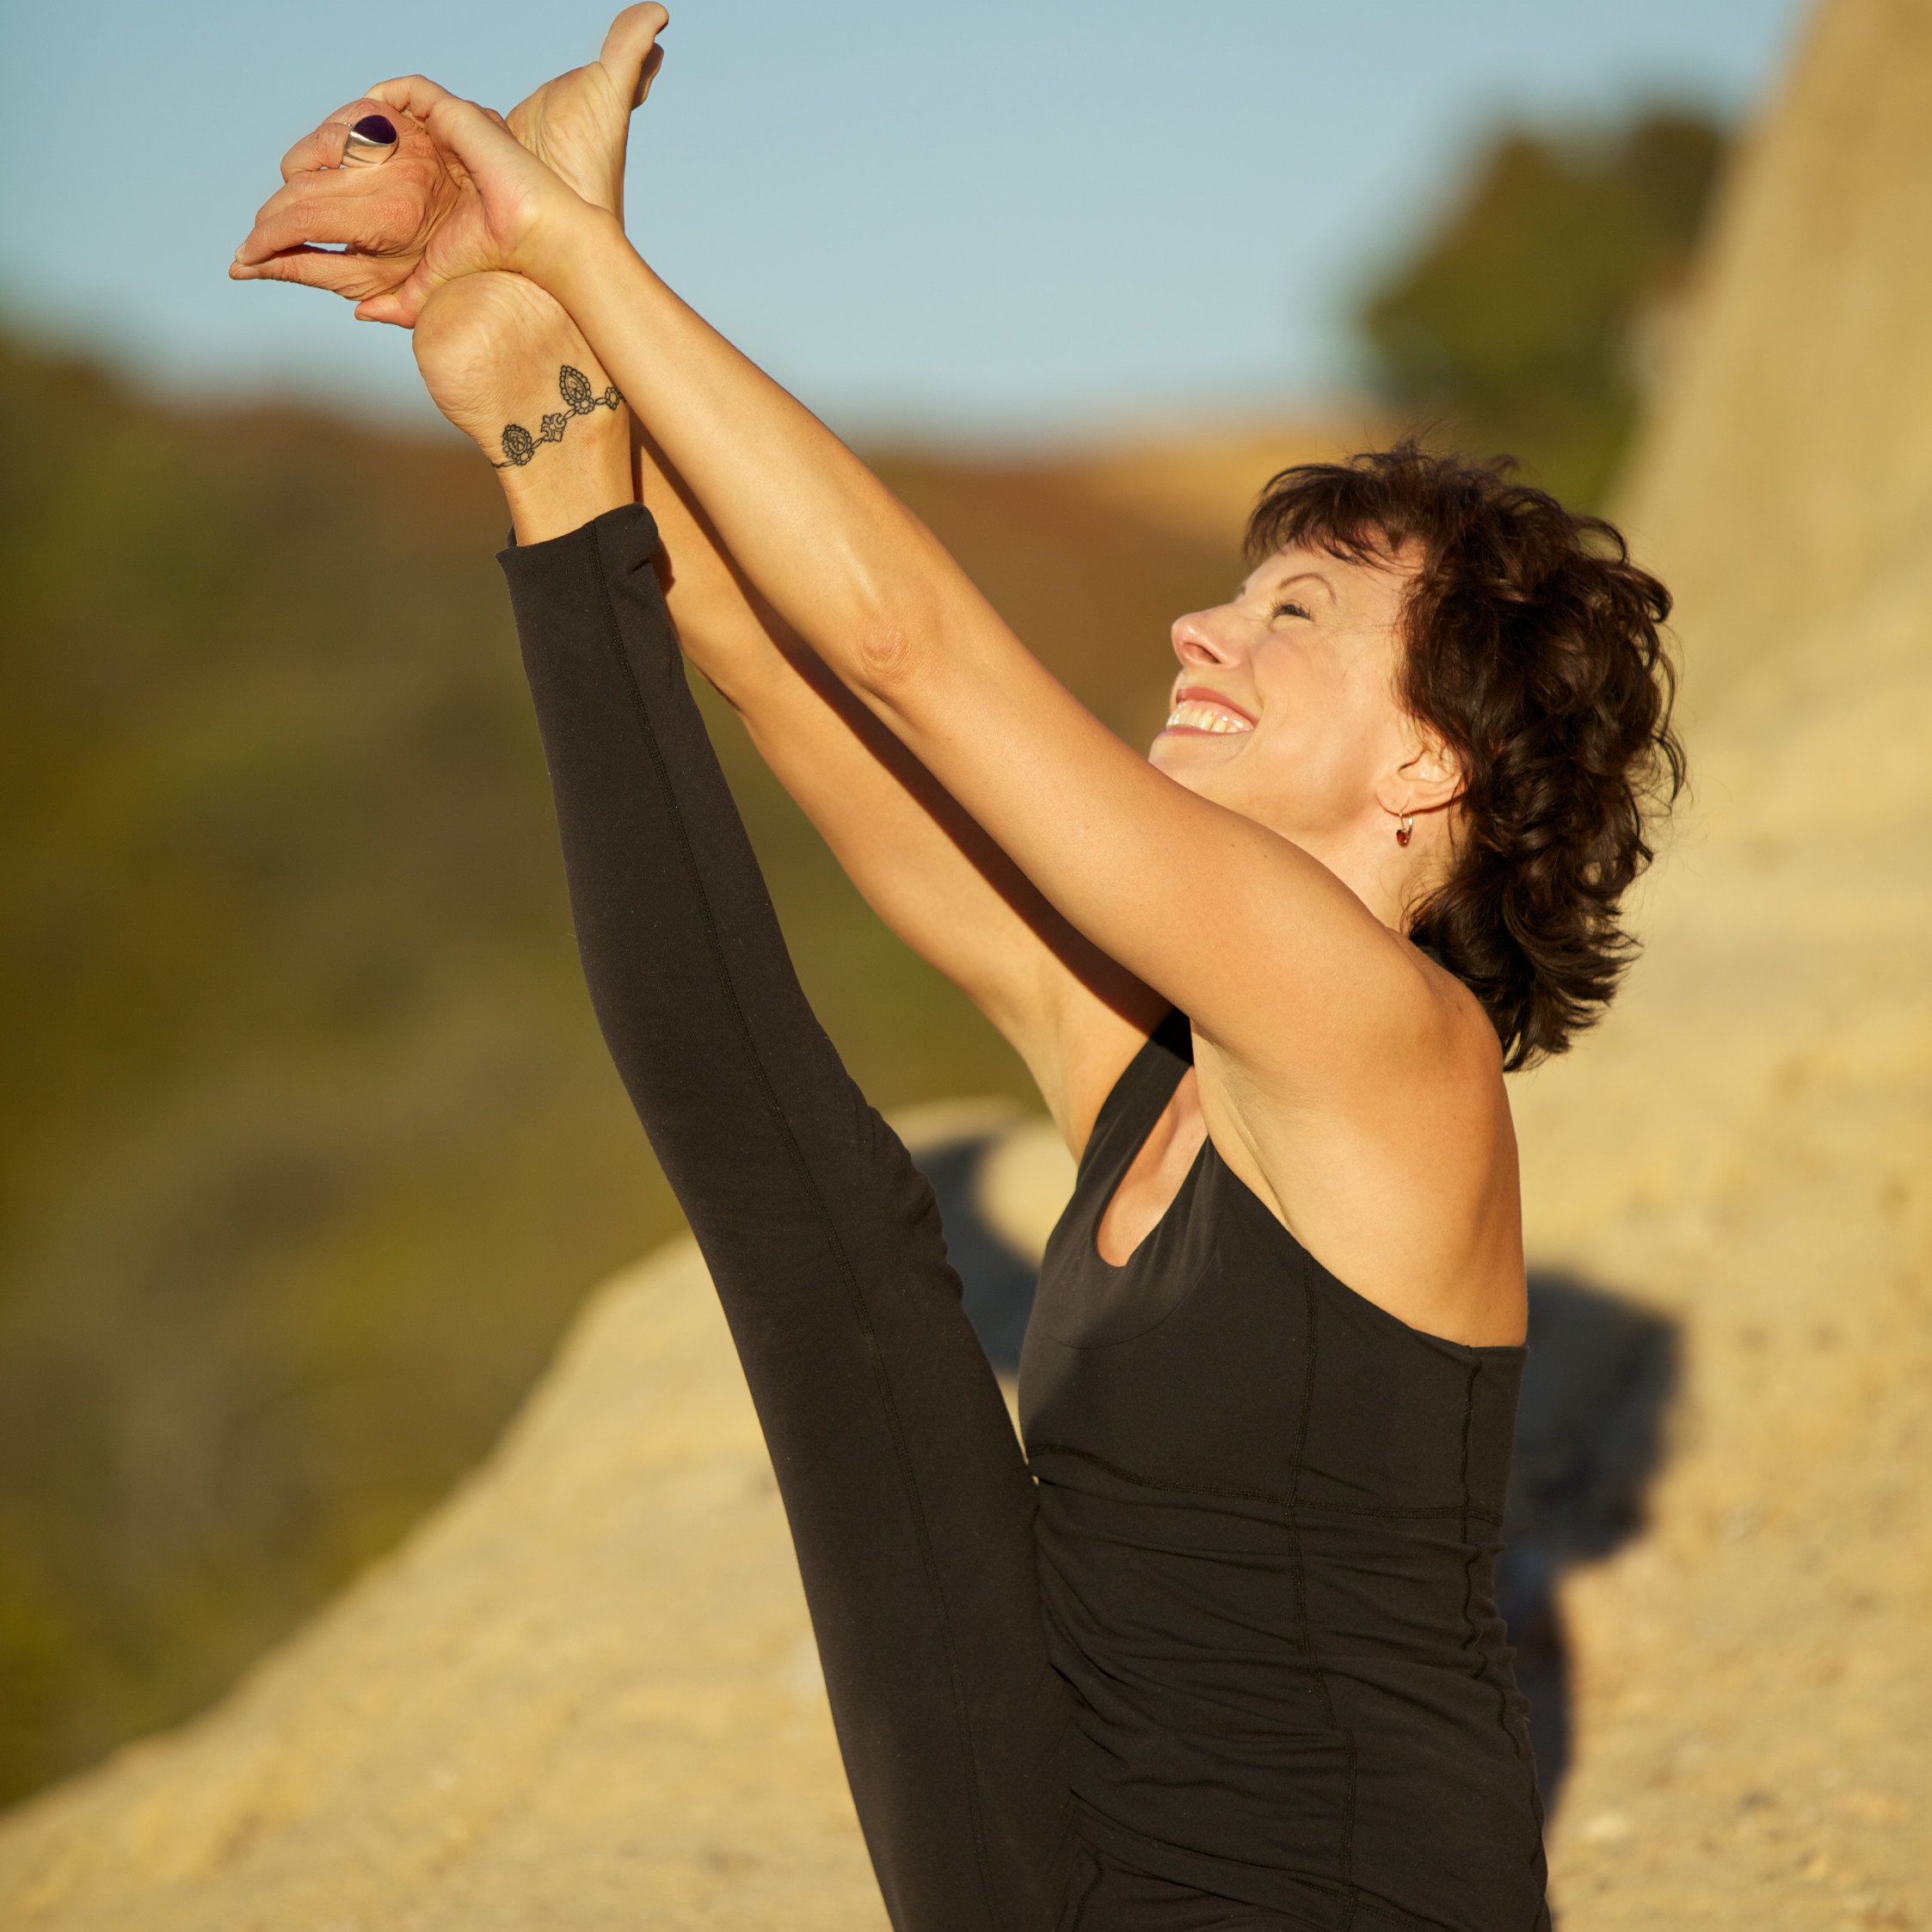 Jeanne Heileman Krounchasana Heron Pose Los Angeles Yoga Teacher